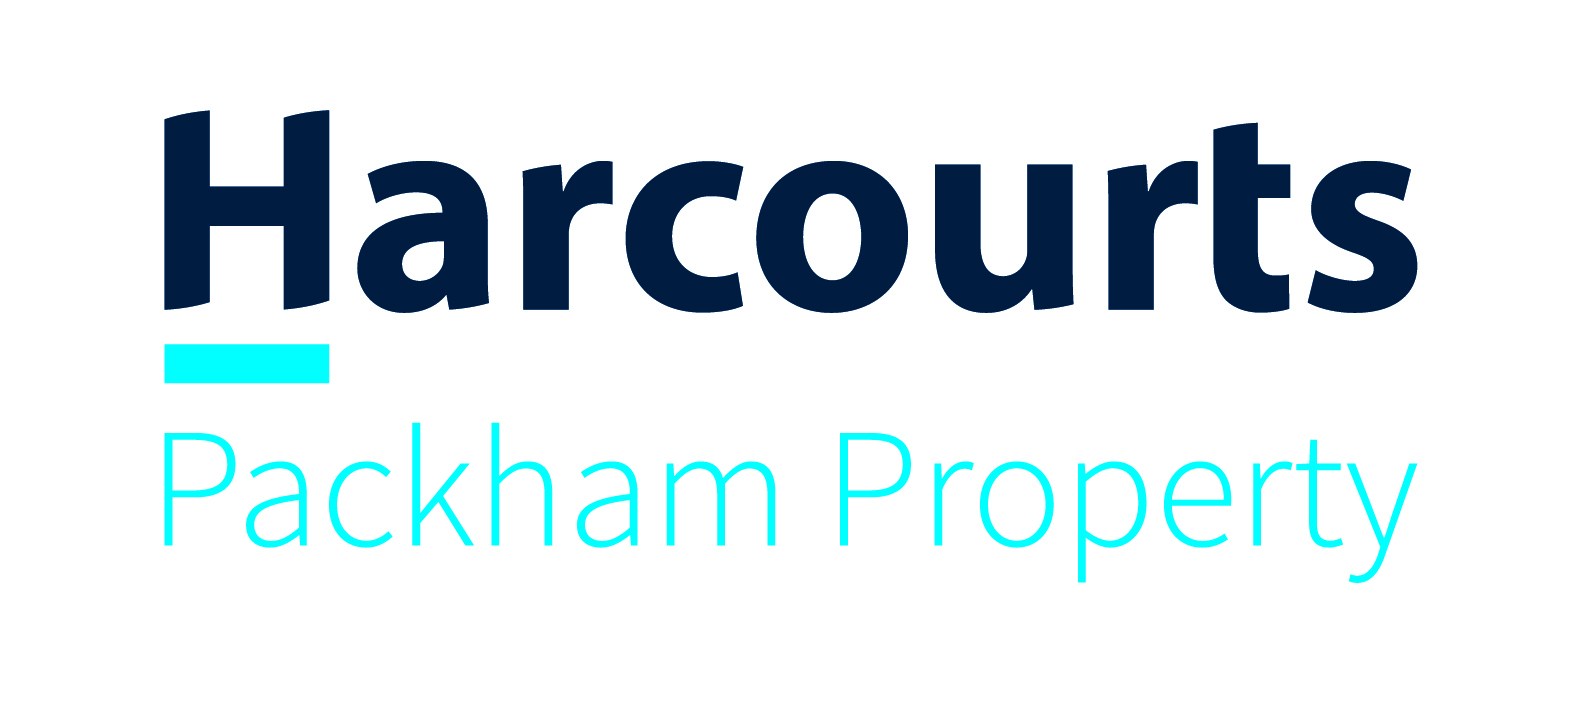 Harcourts Packham Property, Mitchell Park, 5043